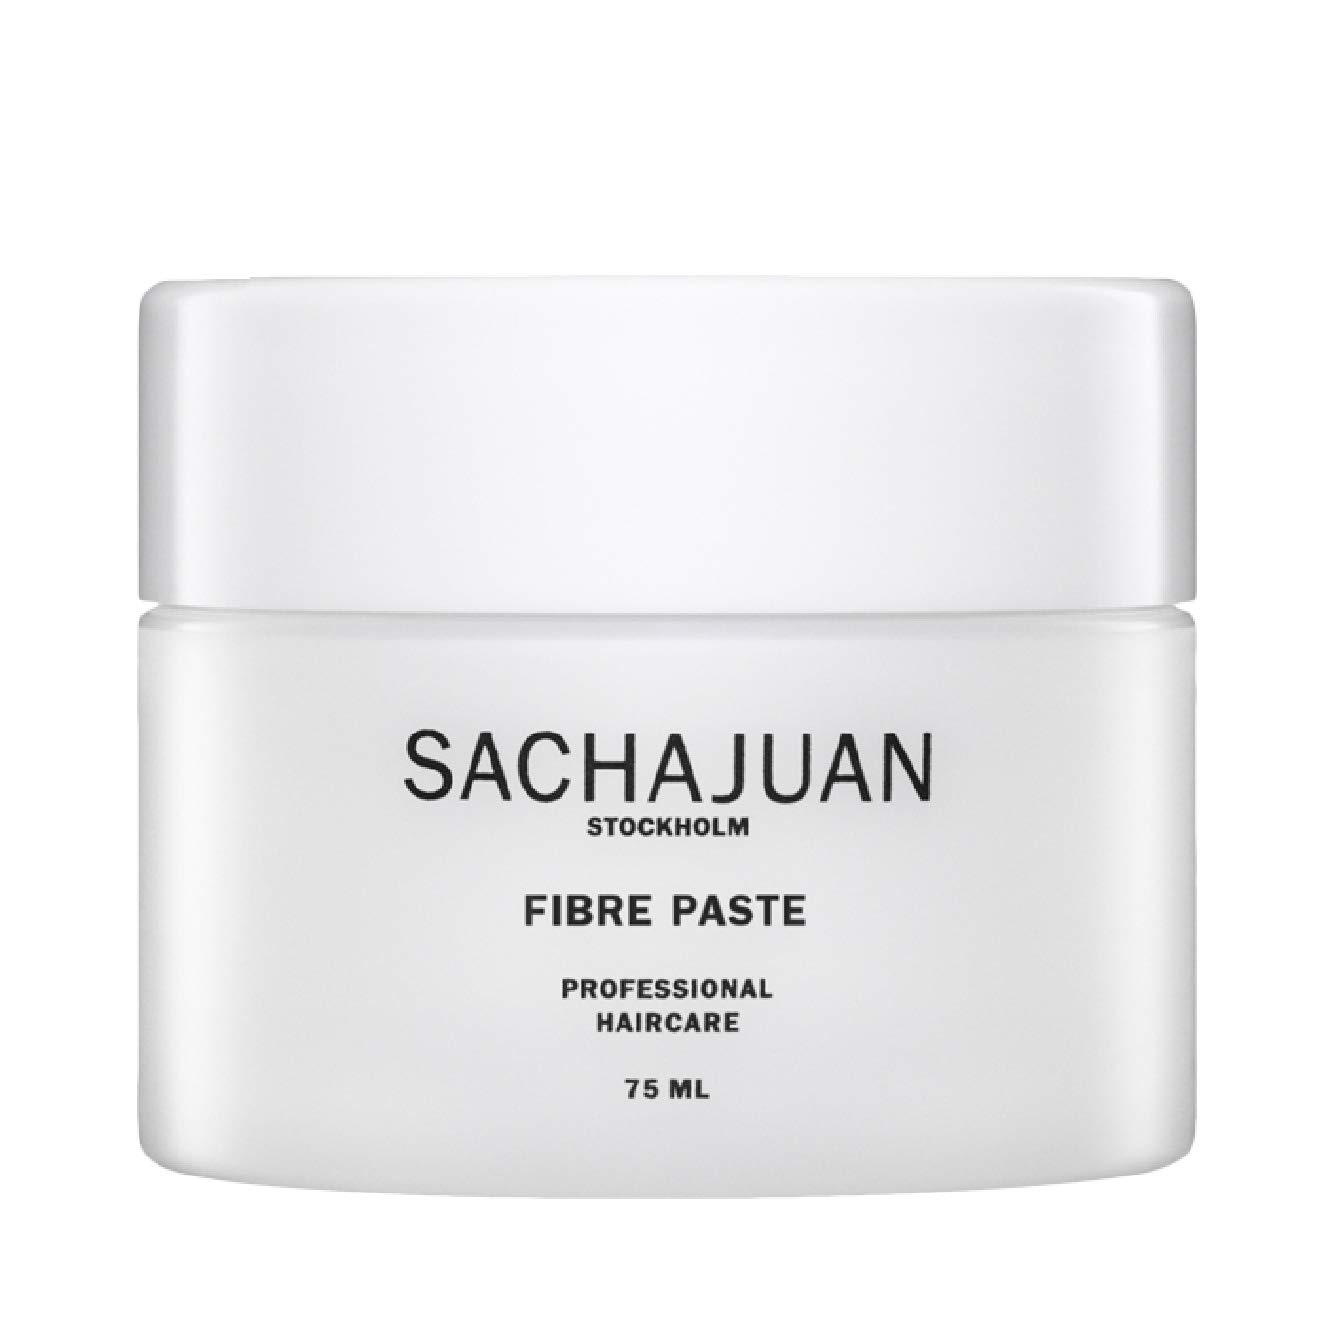 SACHAJUAN Fibre Paste, 2.5 Fl Oz by SACHAJUAN